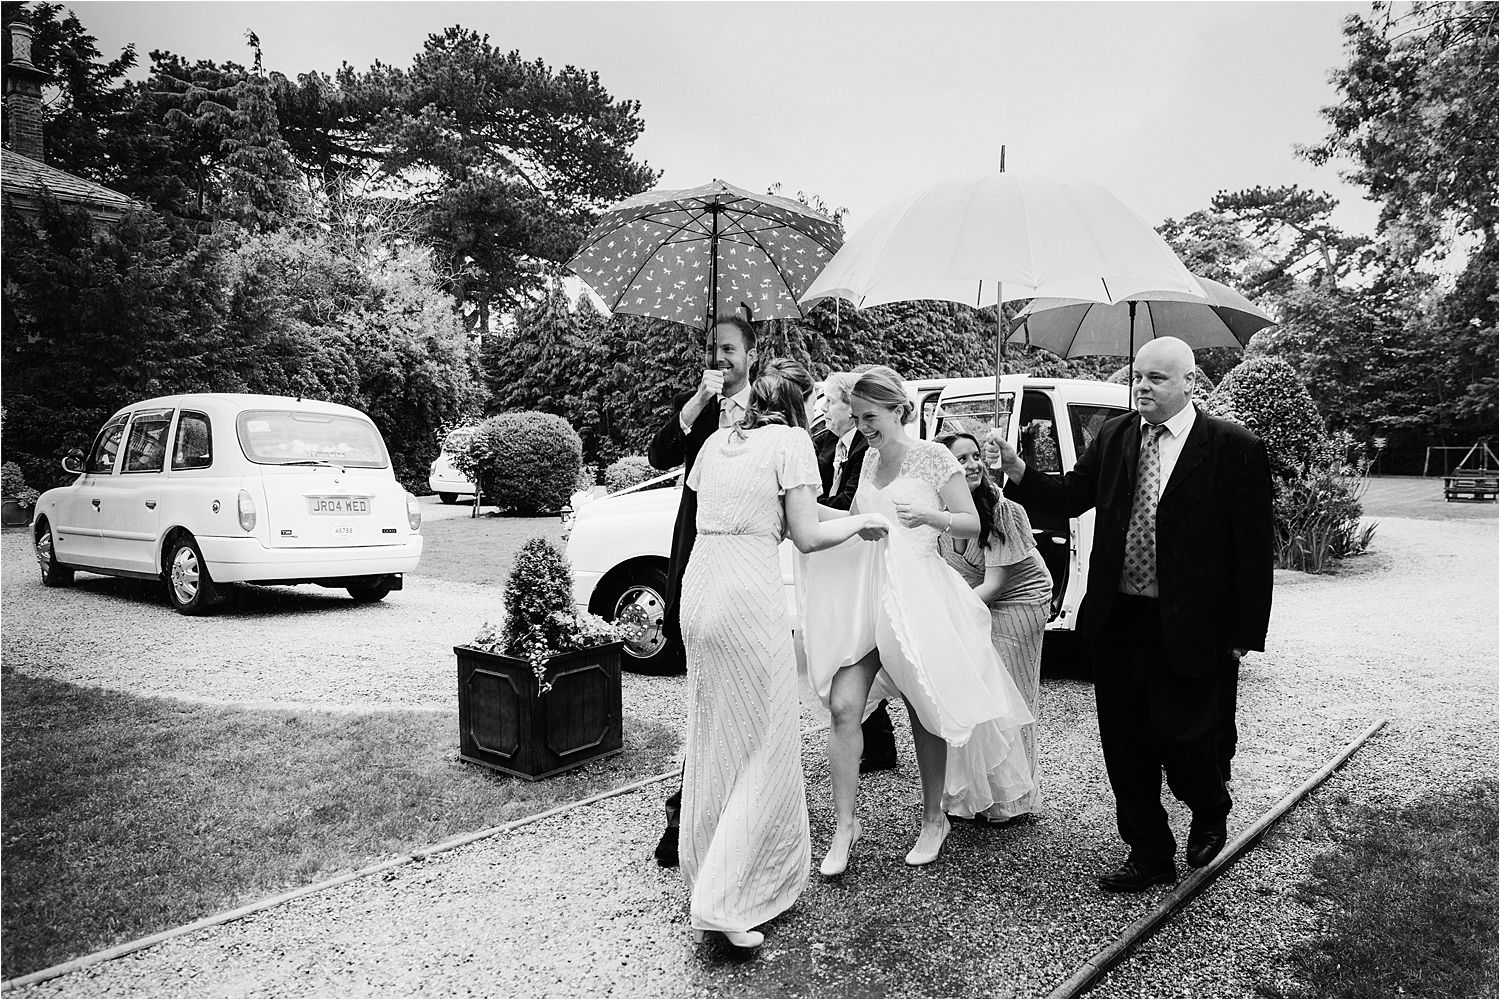 Bridesmaids holding up bride's dress as she walks to ceremony on rainy wedding day.